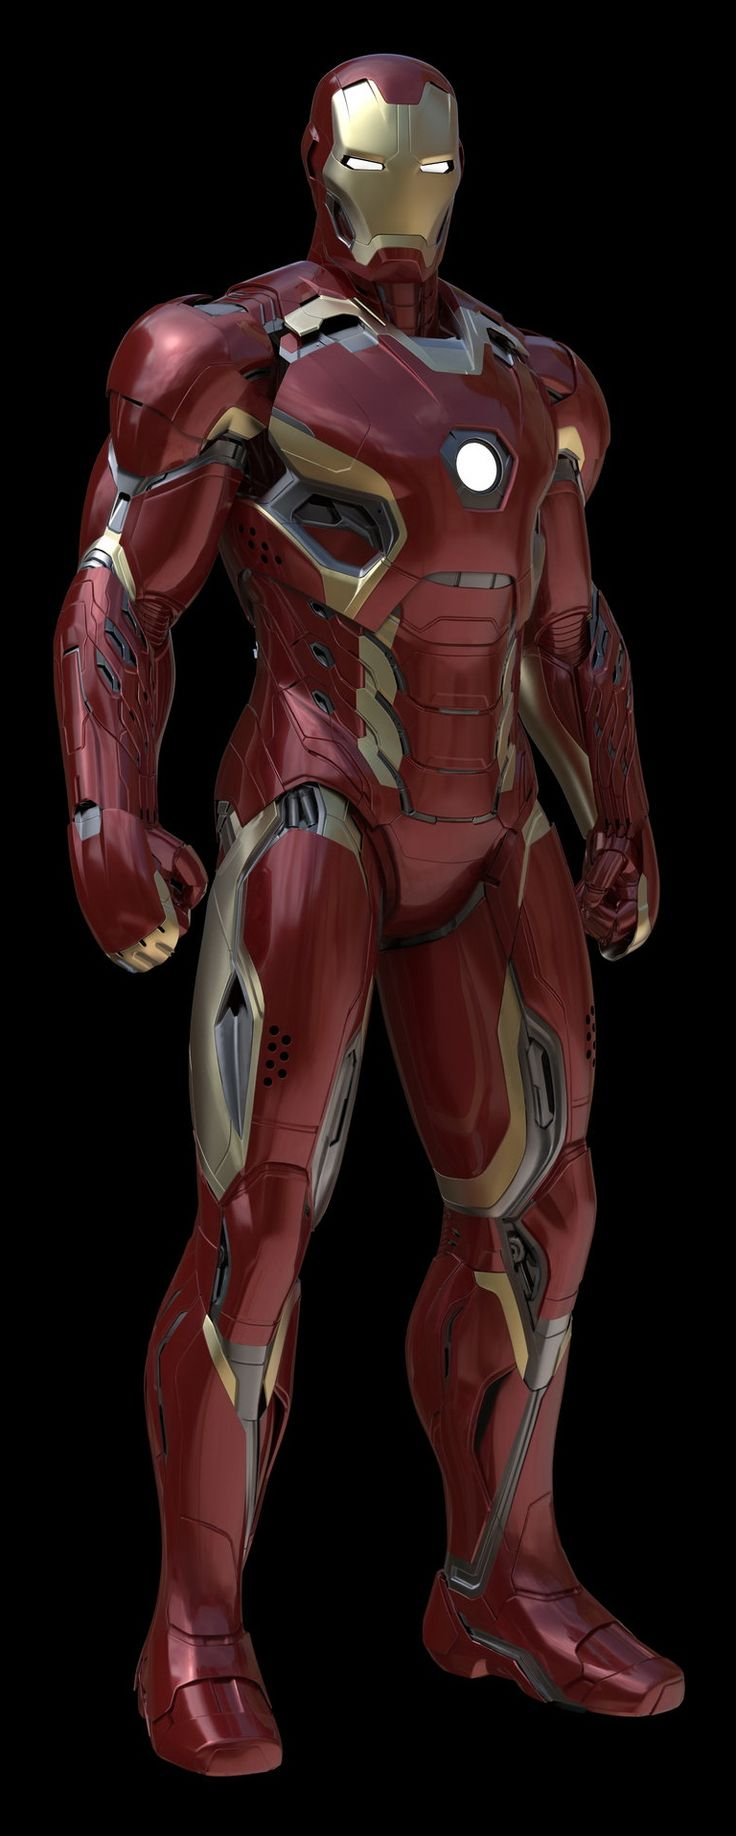 Avengers Concept Art | IRON MAN Mark XLV